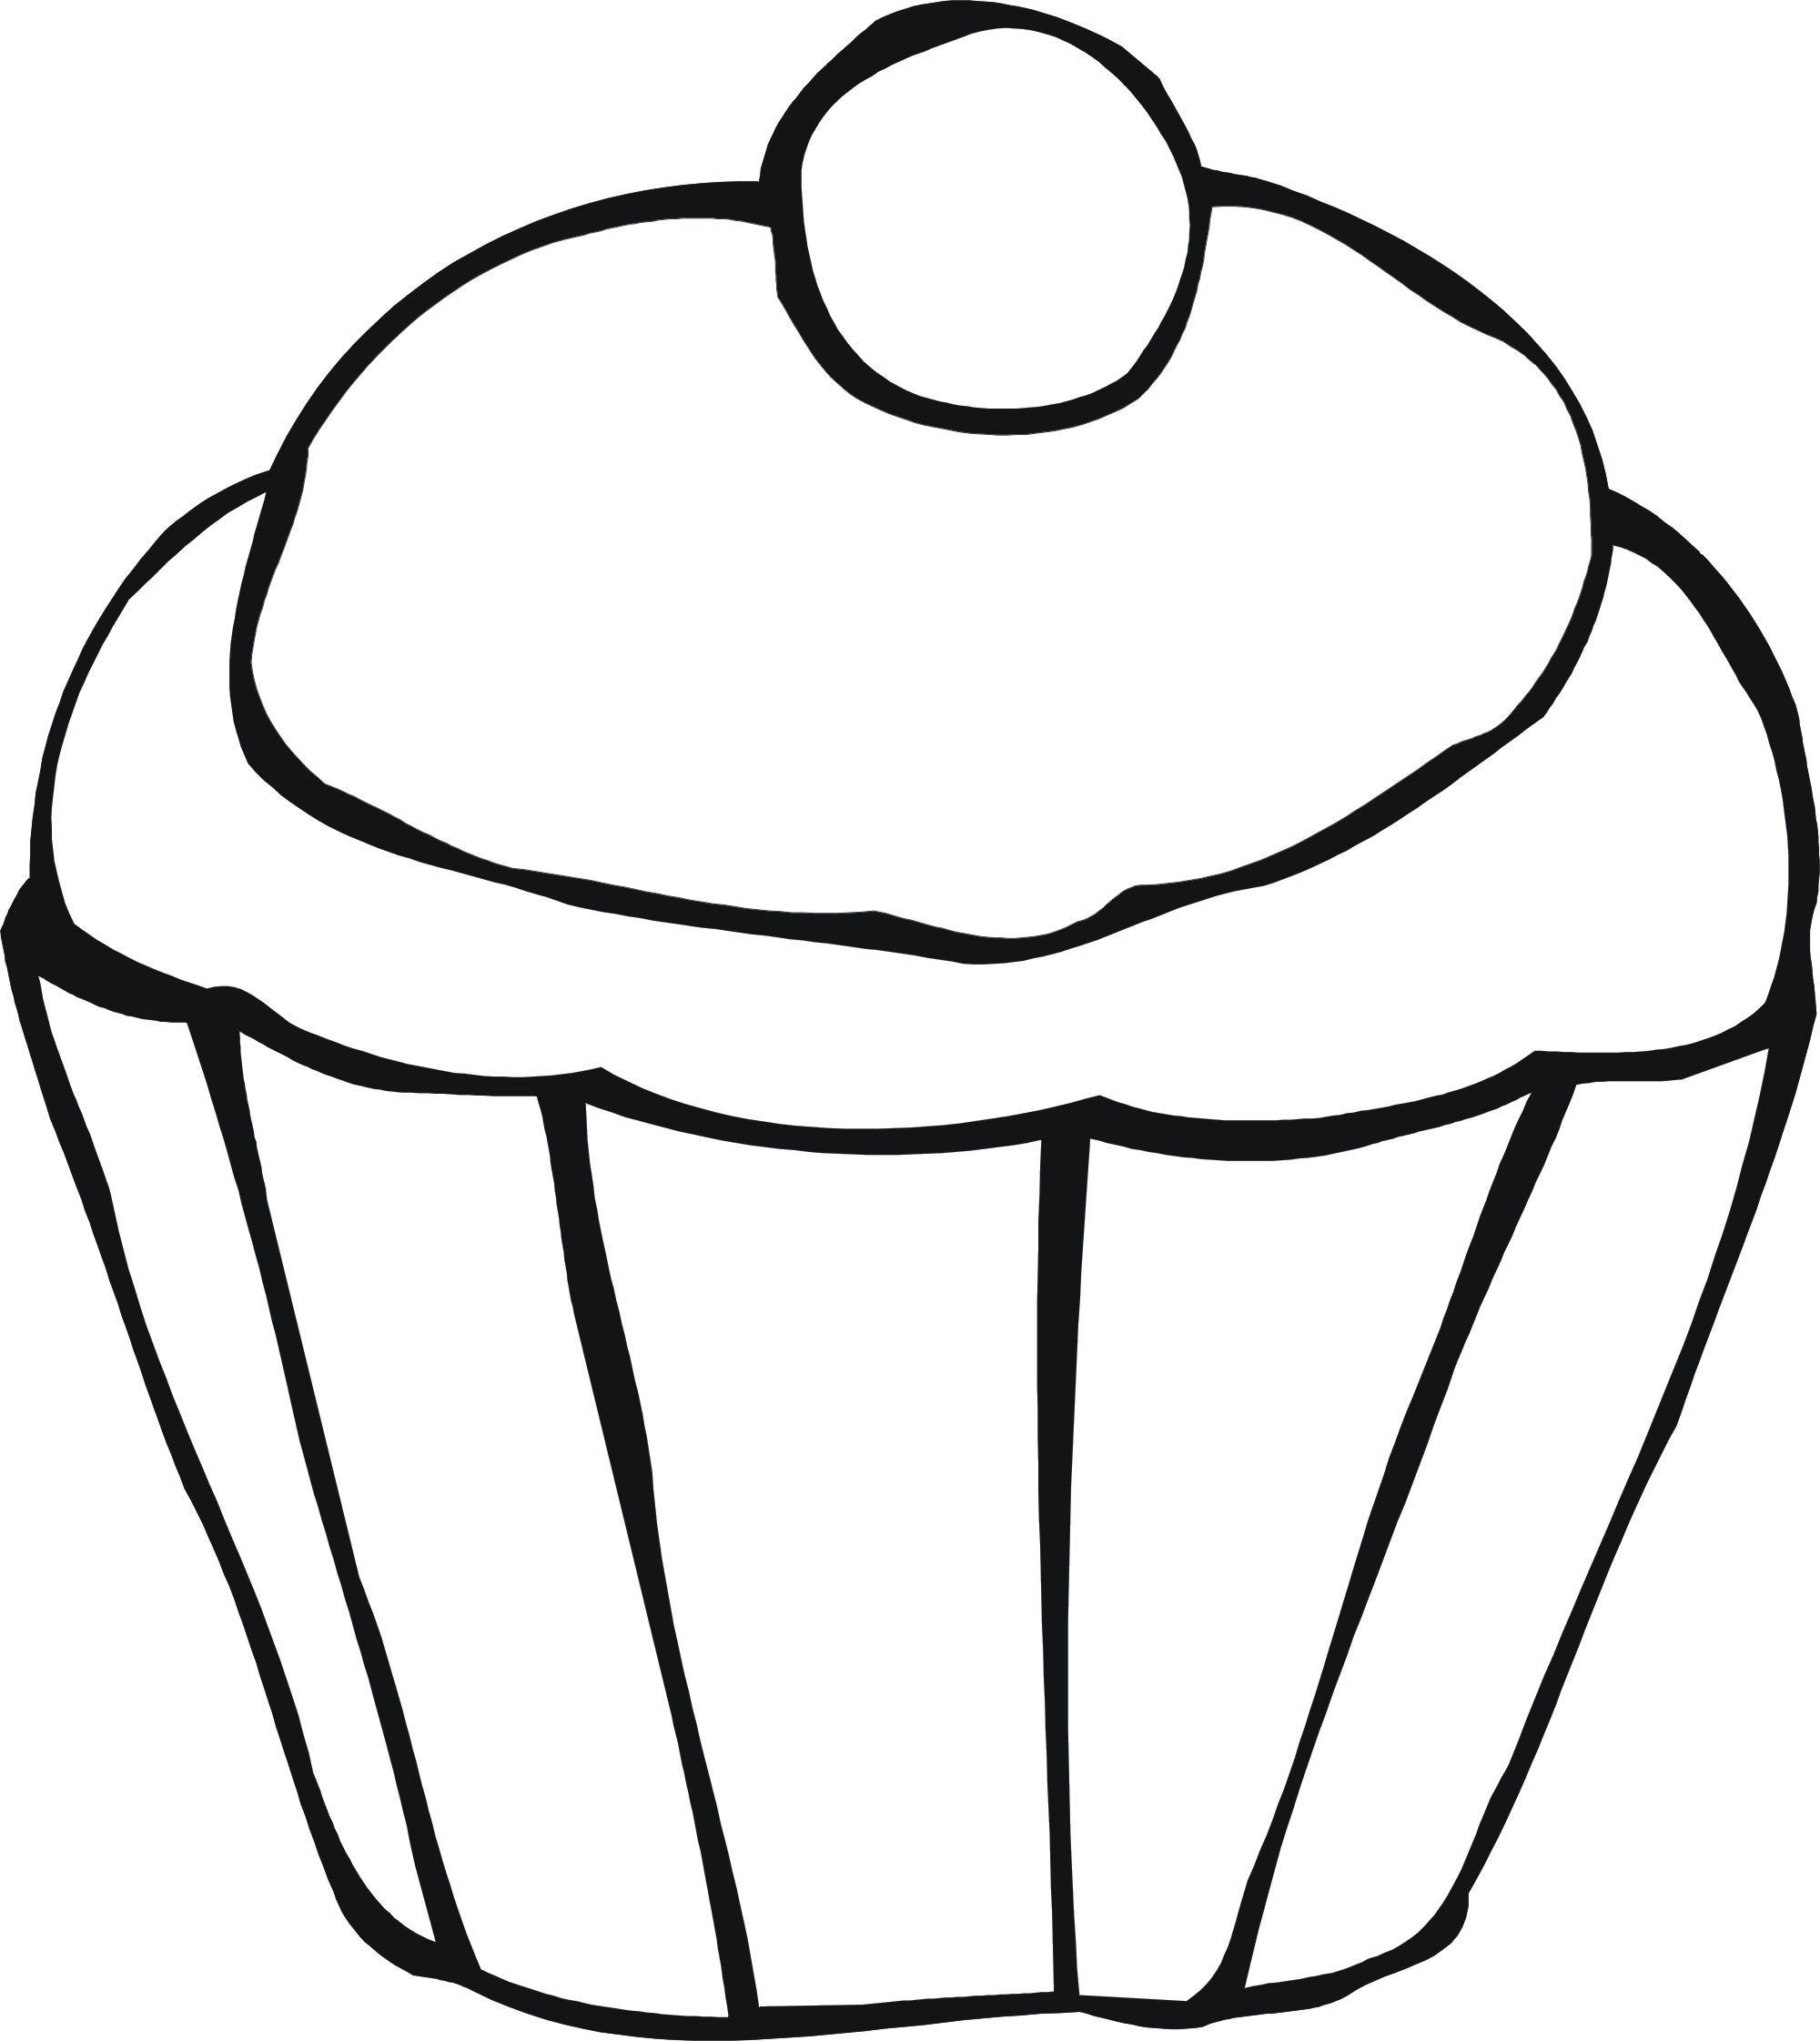 Coloring Pages: Coloring Arts Printable For Preschoolers Free - Free Printable Pages For Preschoolers